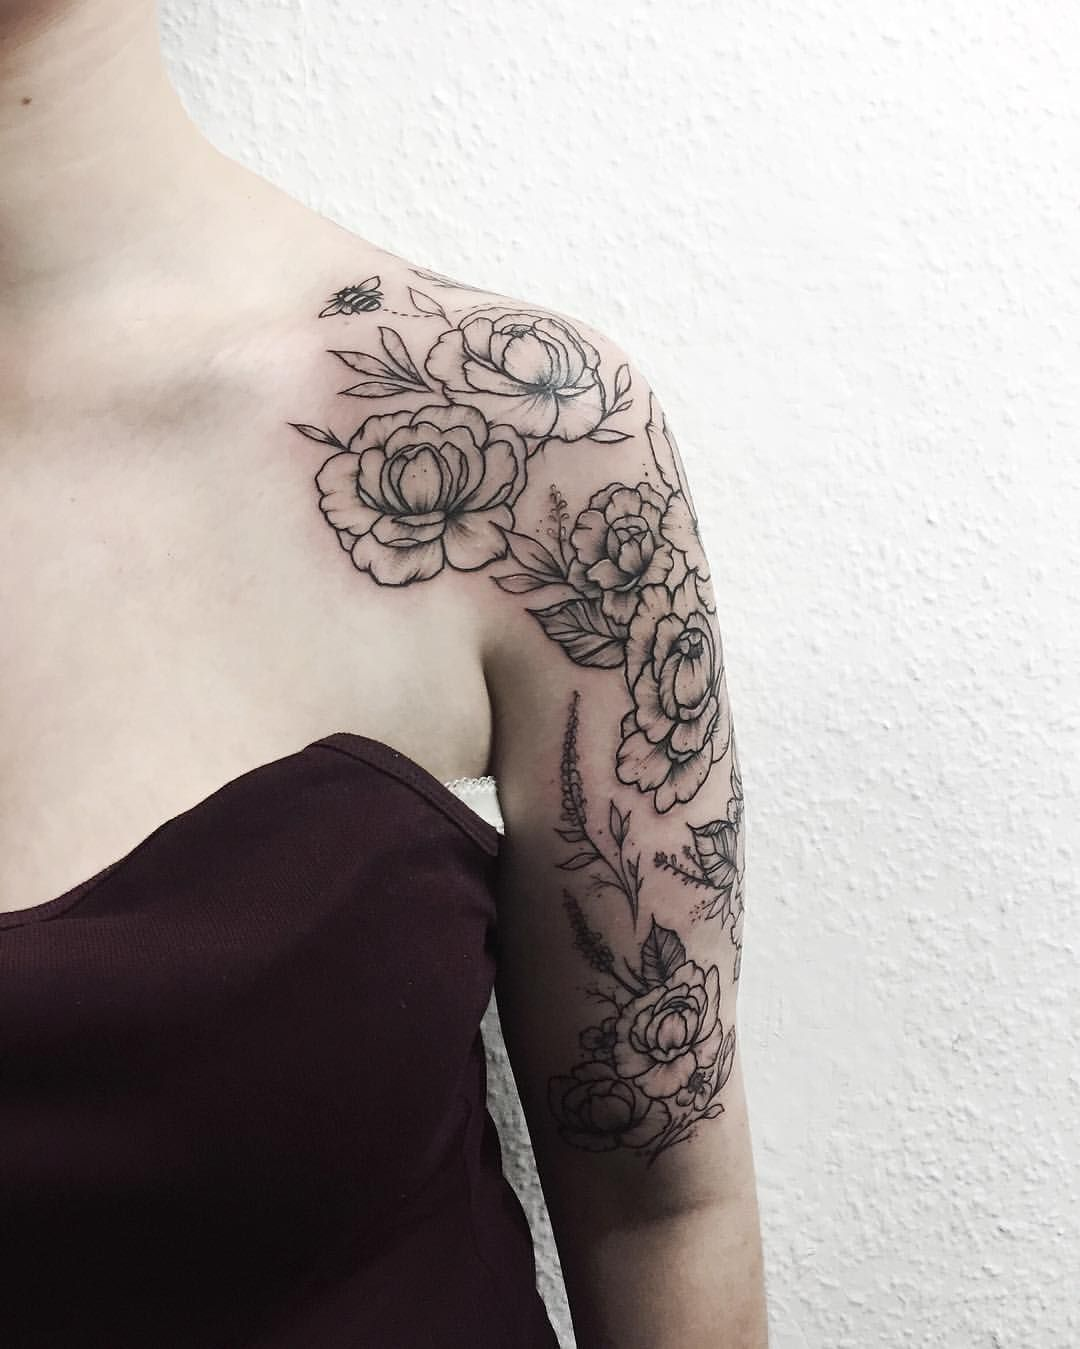 This Is The Kind Of Half Sleeve I Want Very Simple Maybe Dahlias Or Peonies Or Lil Sleeve Tattoos For Women Floral Tattoo Sleeve Half Sleeve Tattoos Drawings